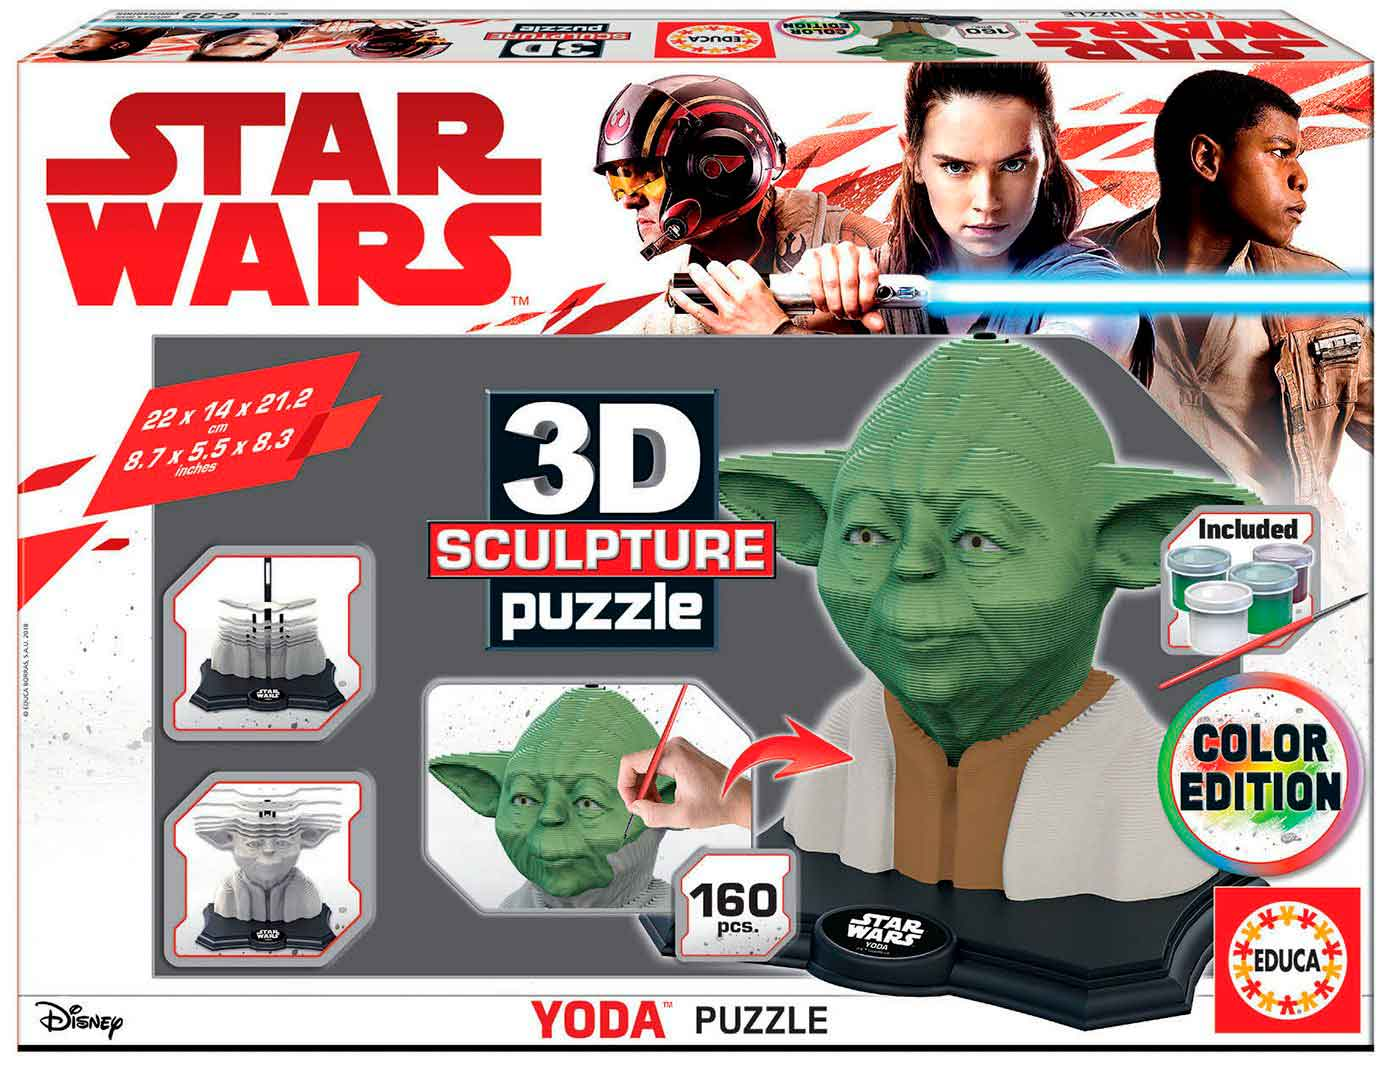 Puzzle 3D Sculpture Color Yoda Star Wars de 160 Piezas